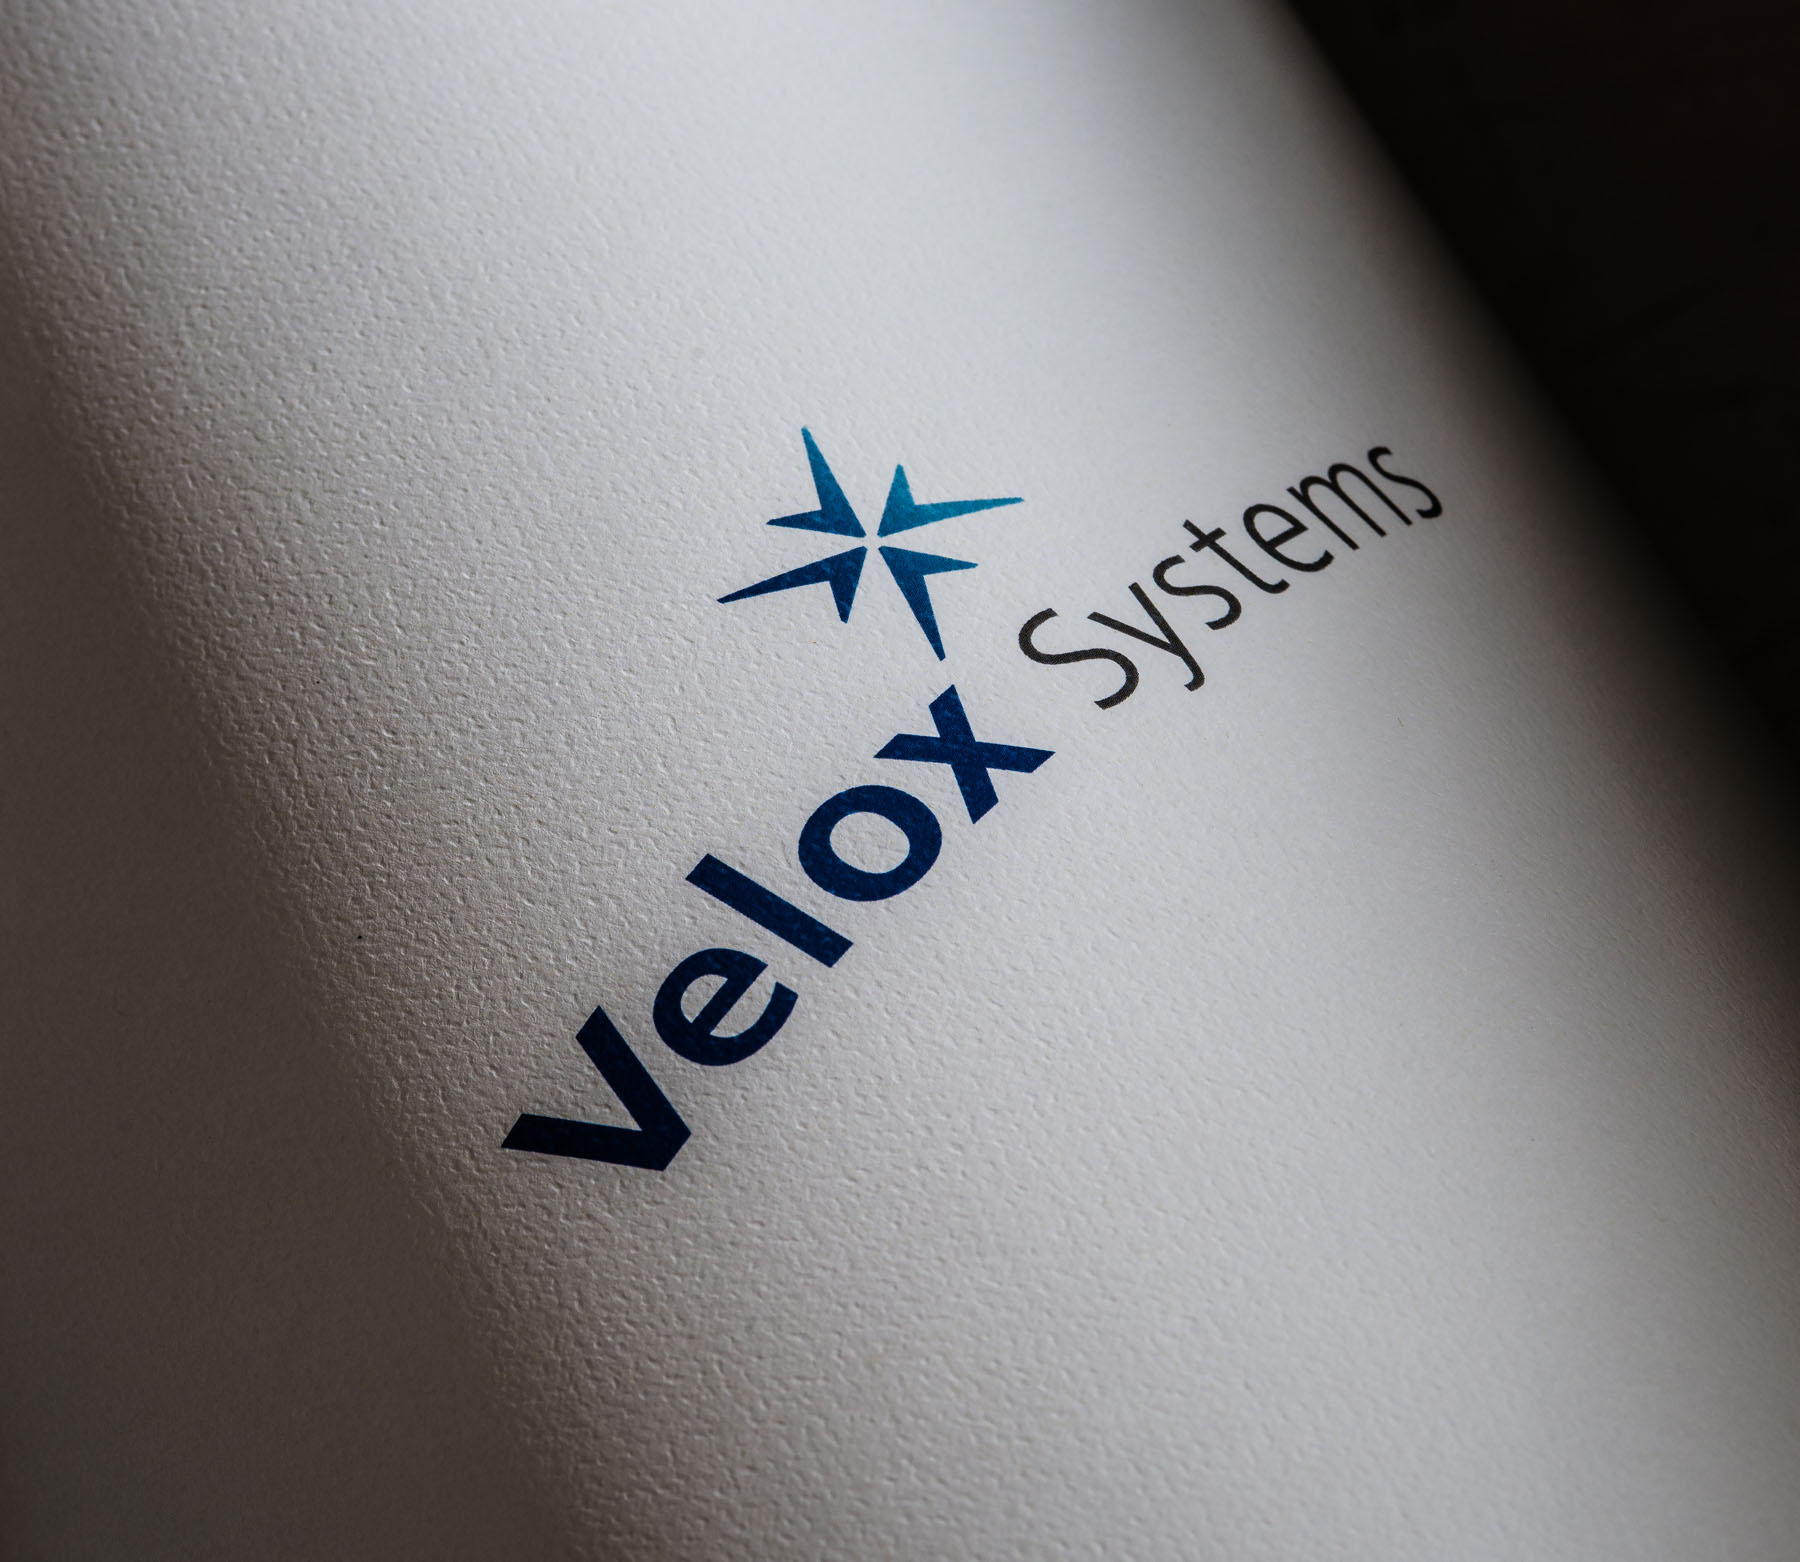 VELOX SYSTEMS